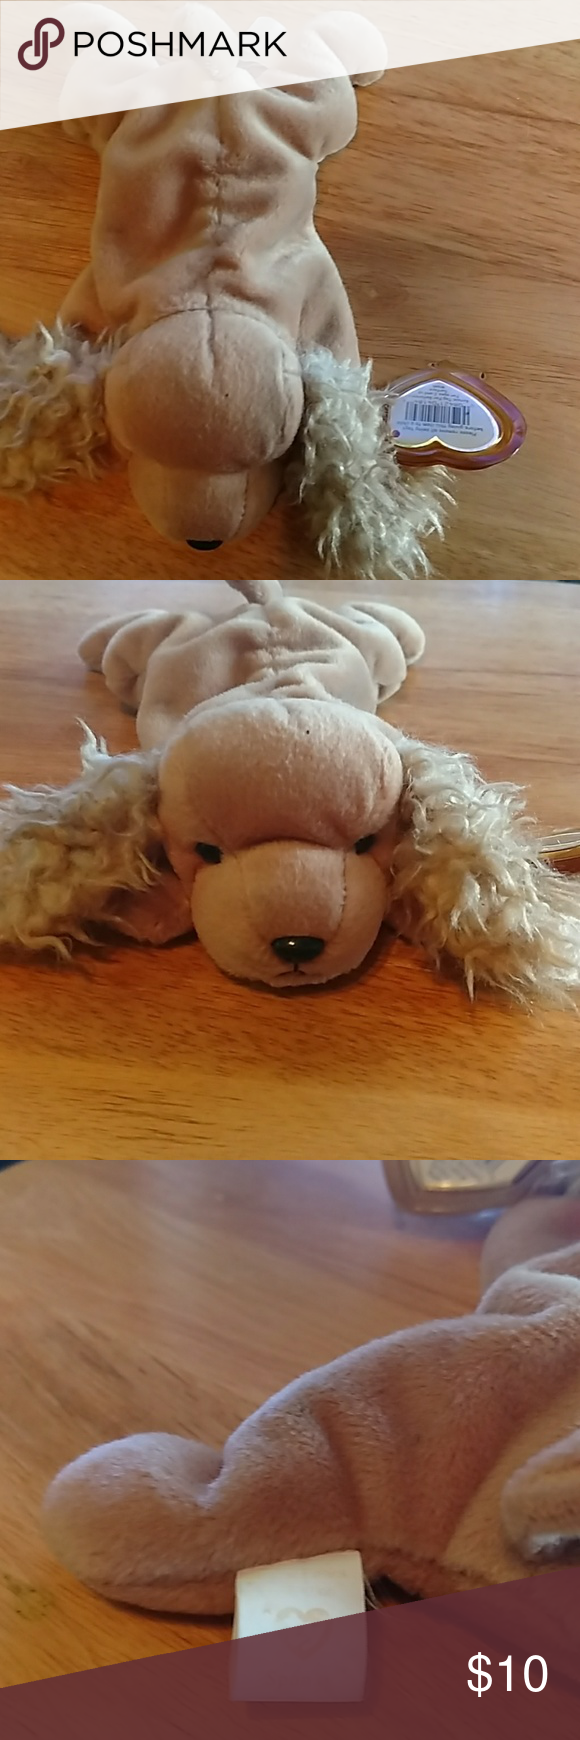 ec5c1826400 Ty original beanie baby spunky Ty beanie baby spunky. In good condition  with no rips or stains. Other